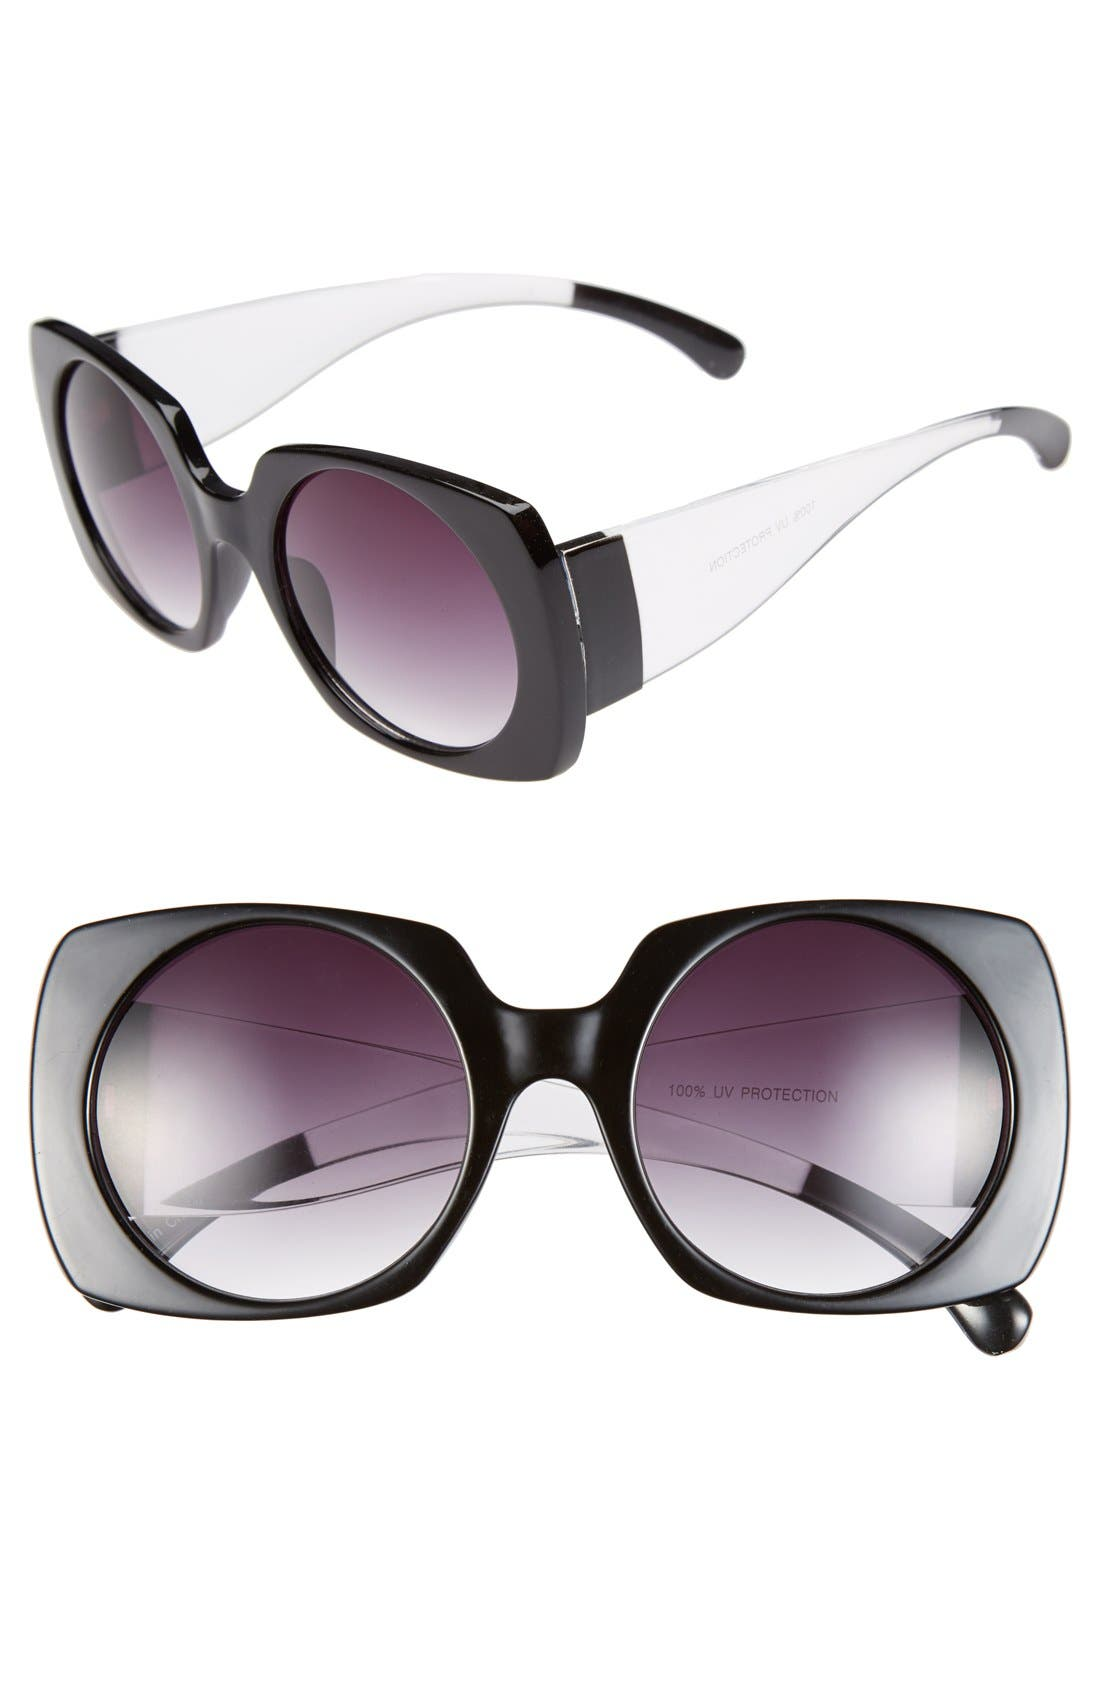 Alternate Image 1 Selected - FE NY 53mm Oversized Square Sunglasses